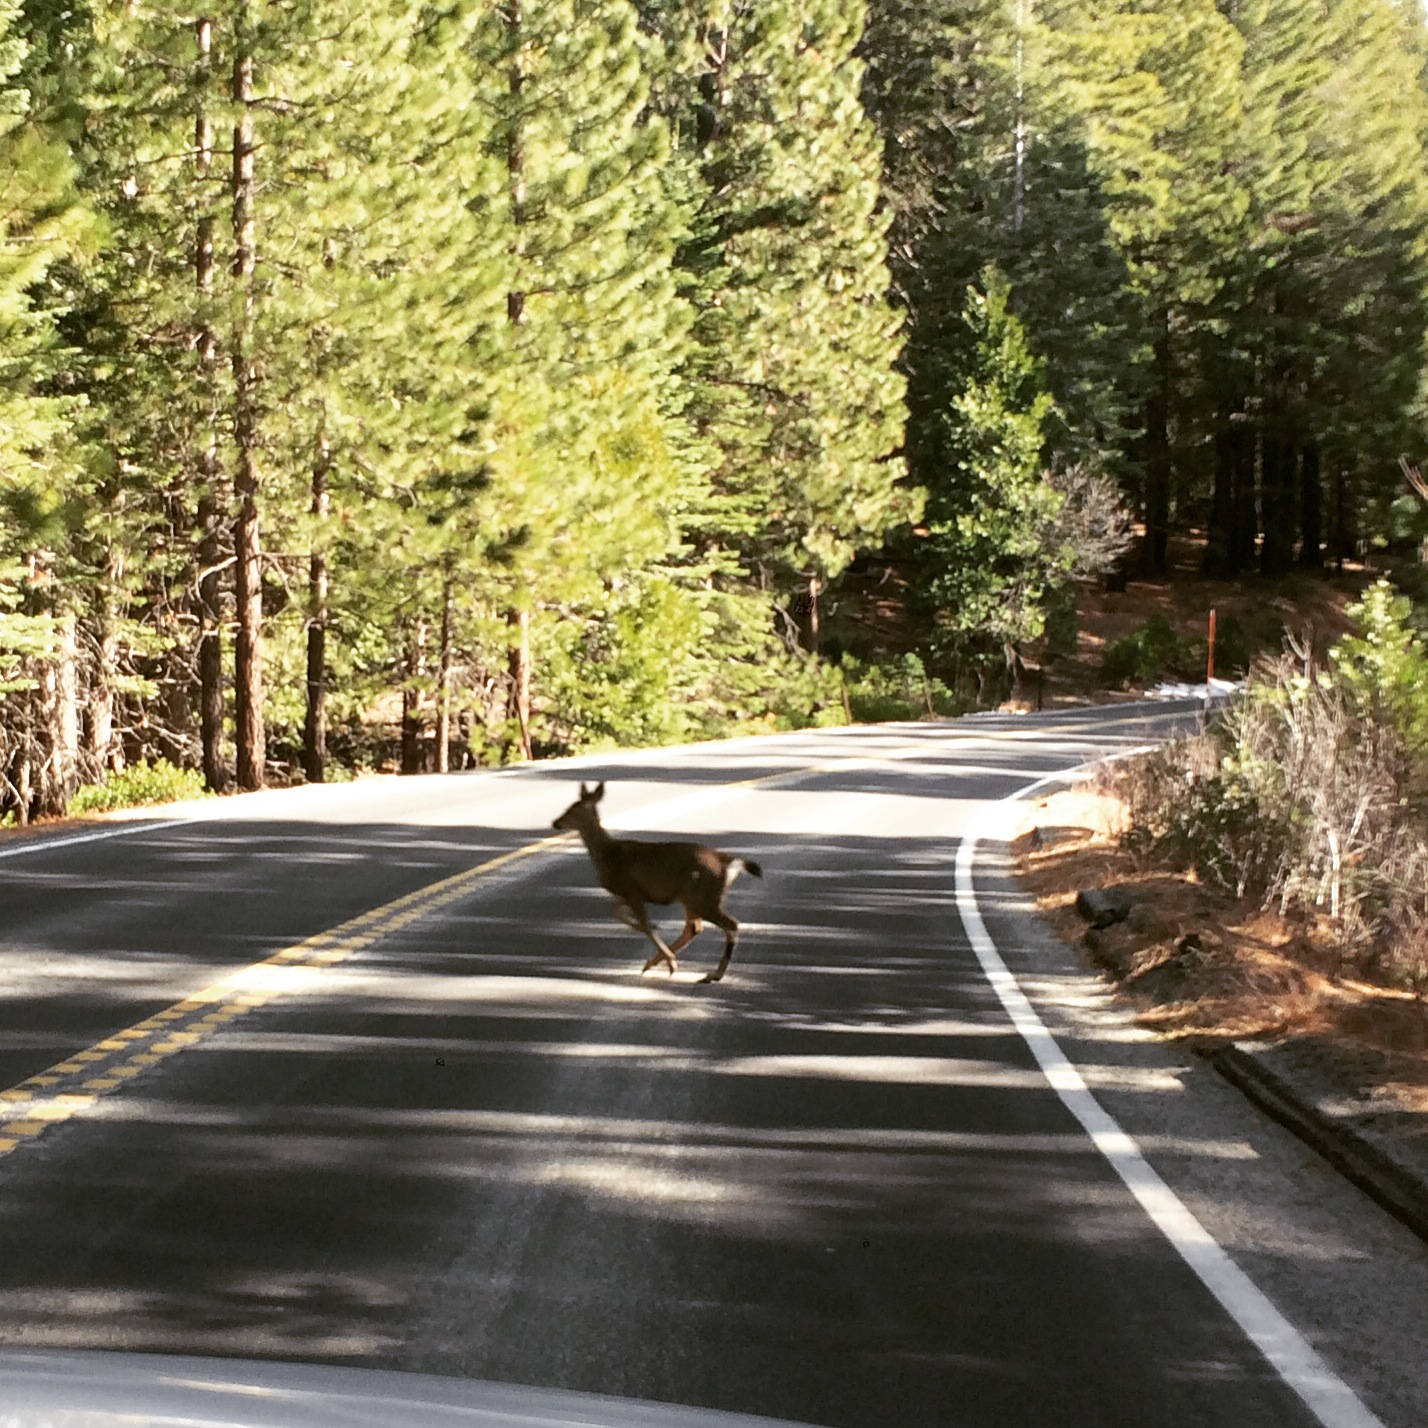 Deer family - driving in to Yosemite National Park